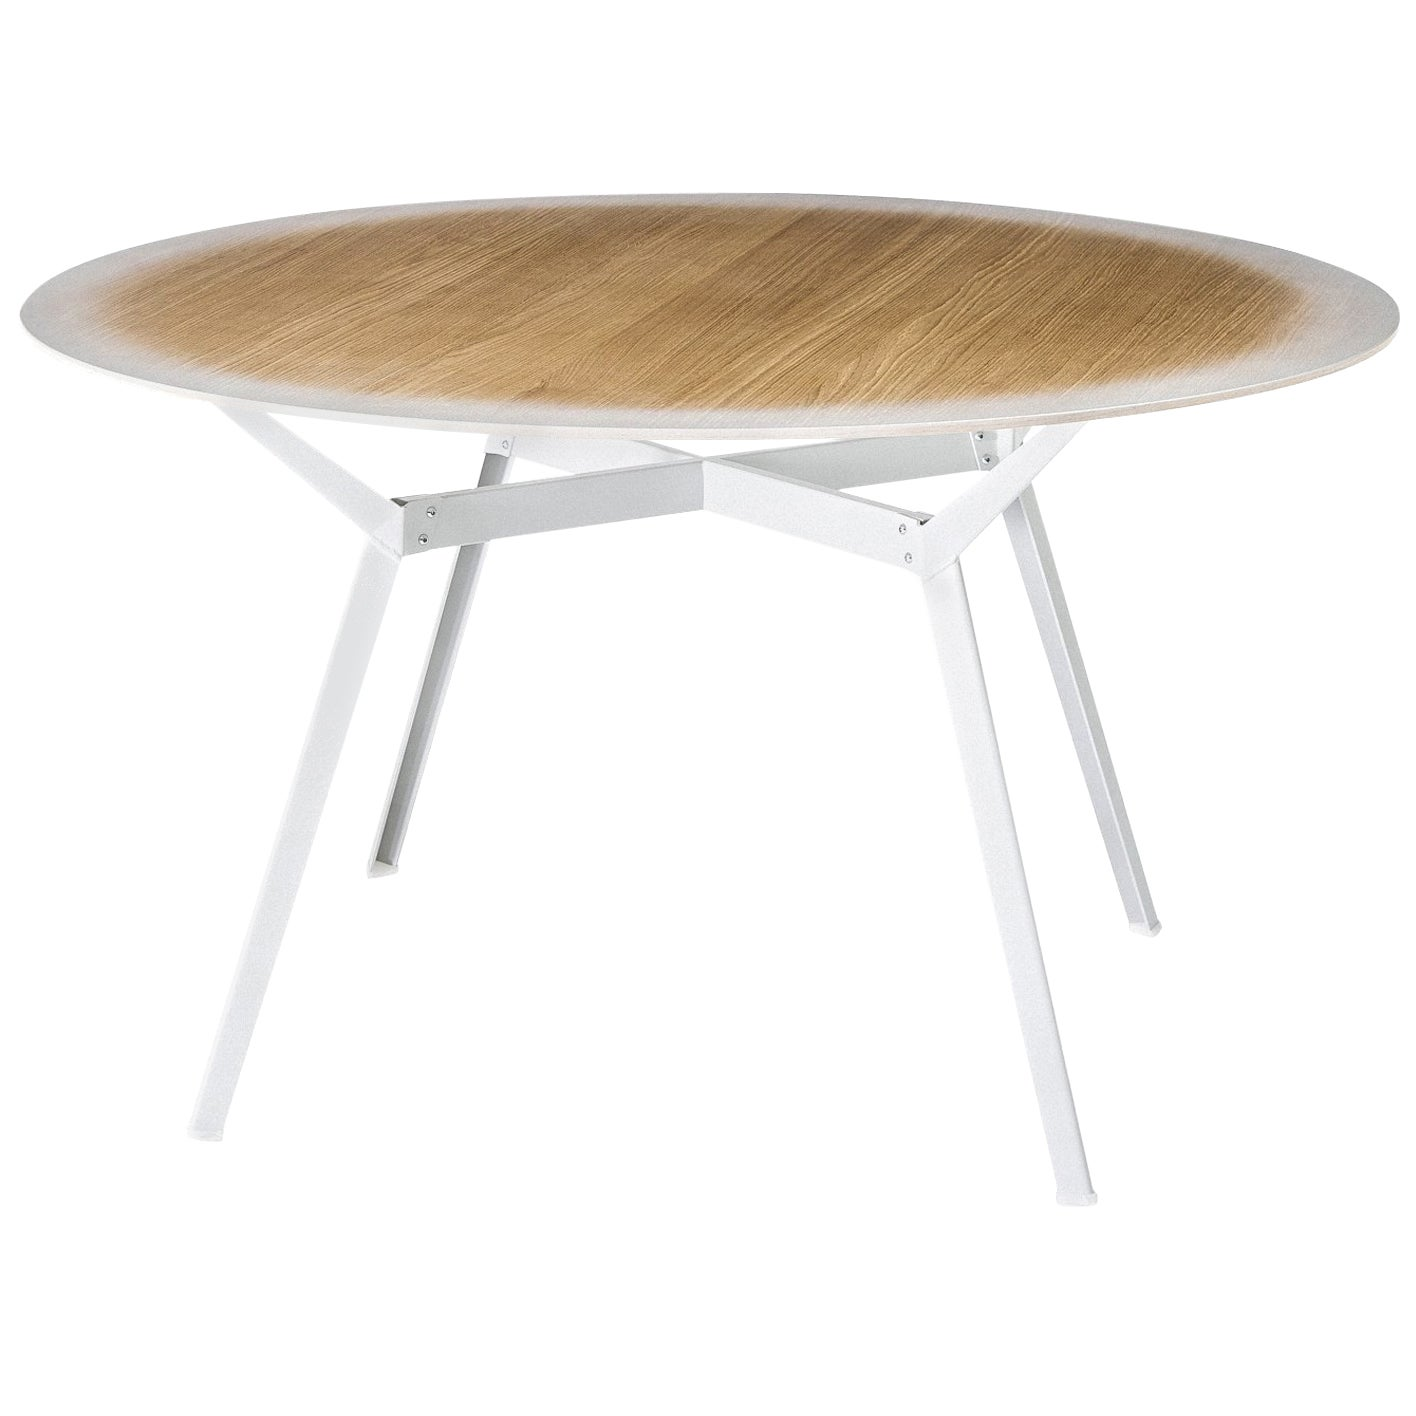 """Pylon Gradient"" Round Table with Oak Top and Steel Base by Moroso for Diesel"